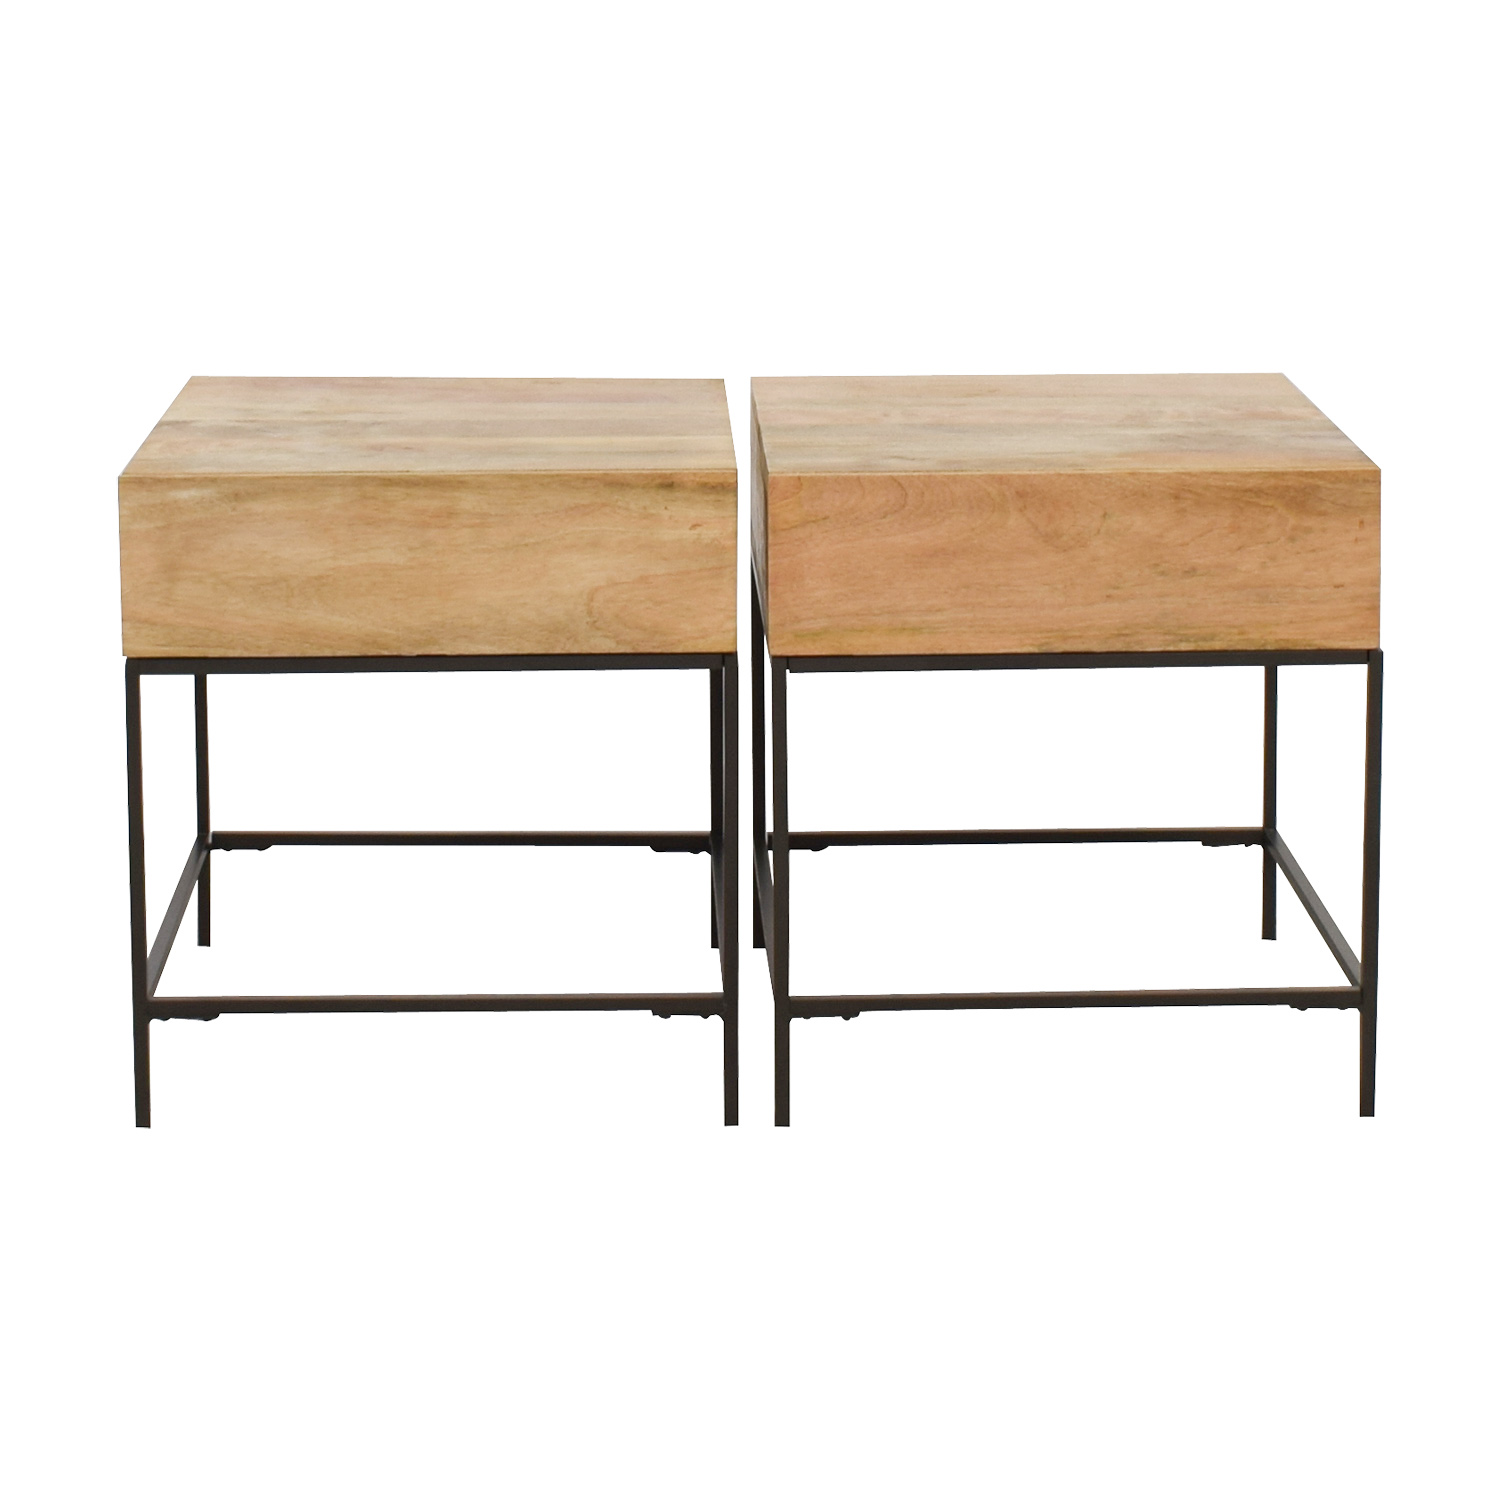 off west elm rustic raw mango wood single drawer end william sonoma tables accent table beige oak floor threshold cream bedside lamps white dresser tall and stools set iron chairs